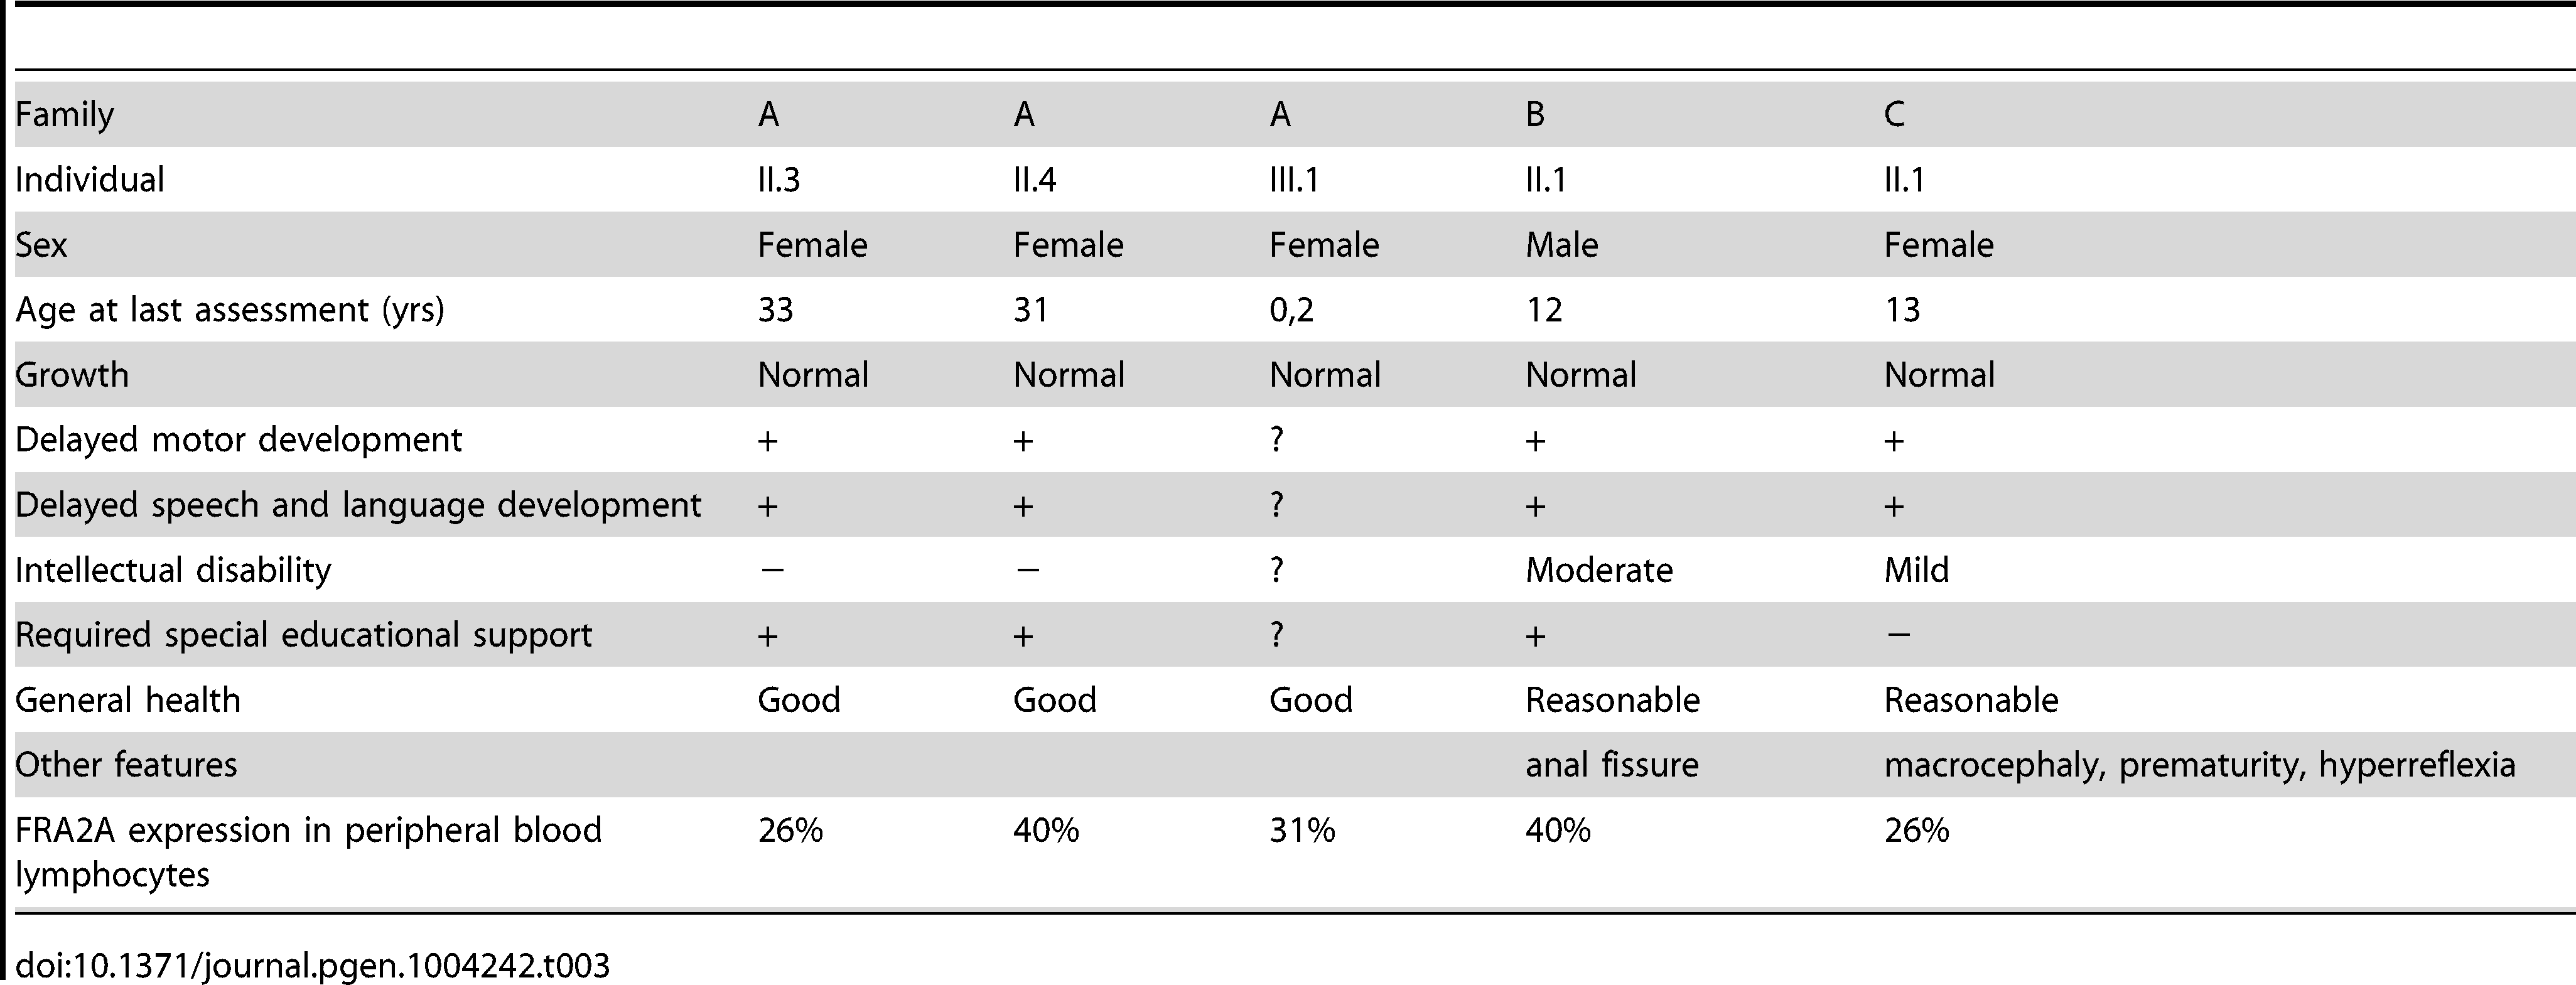 Clinical findings in FRA2A carriers.